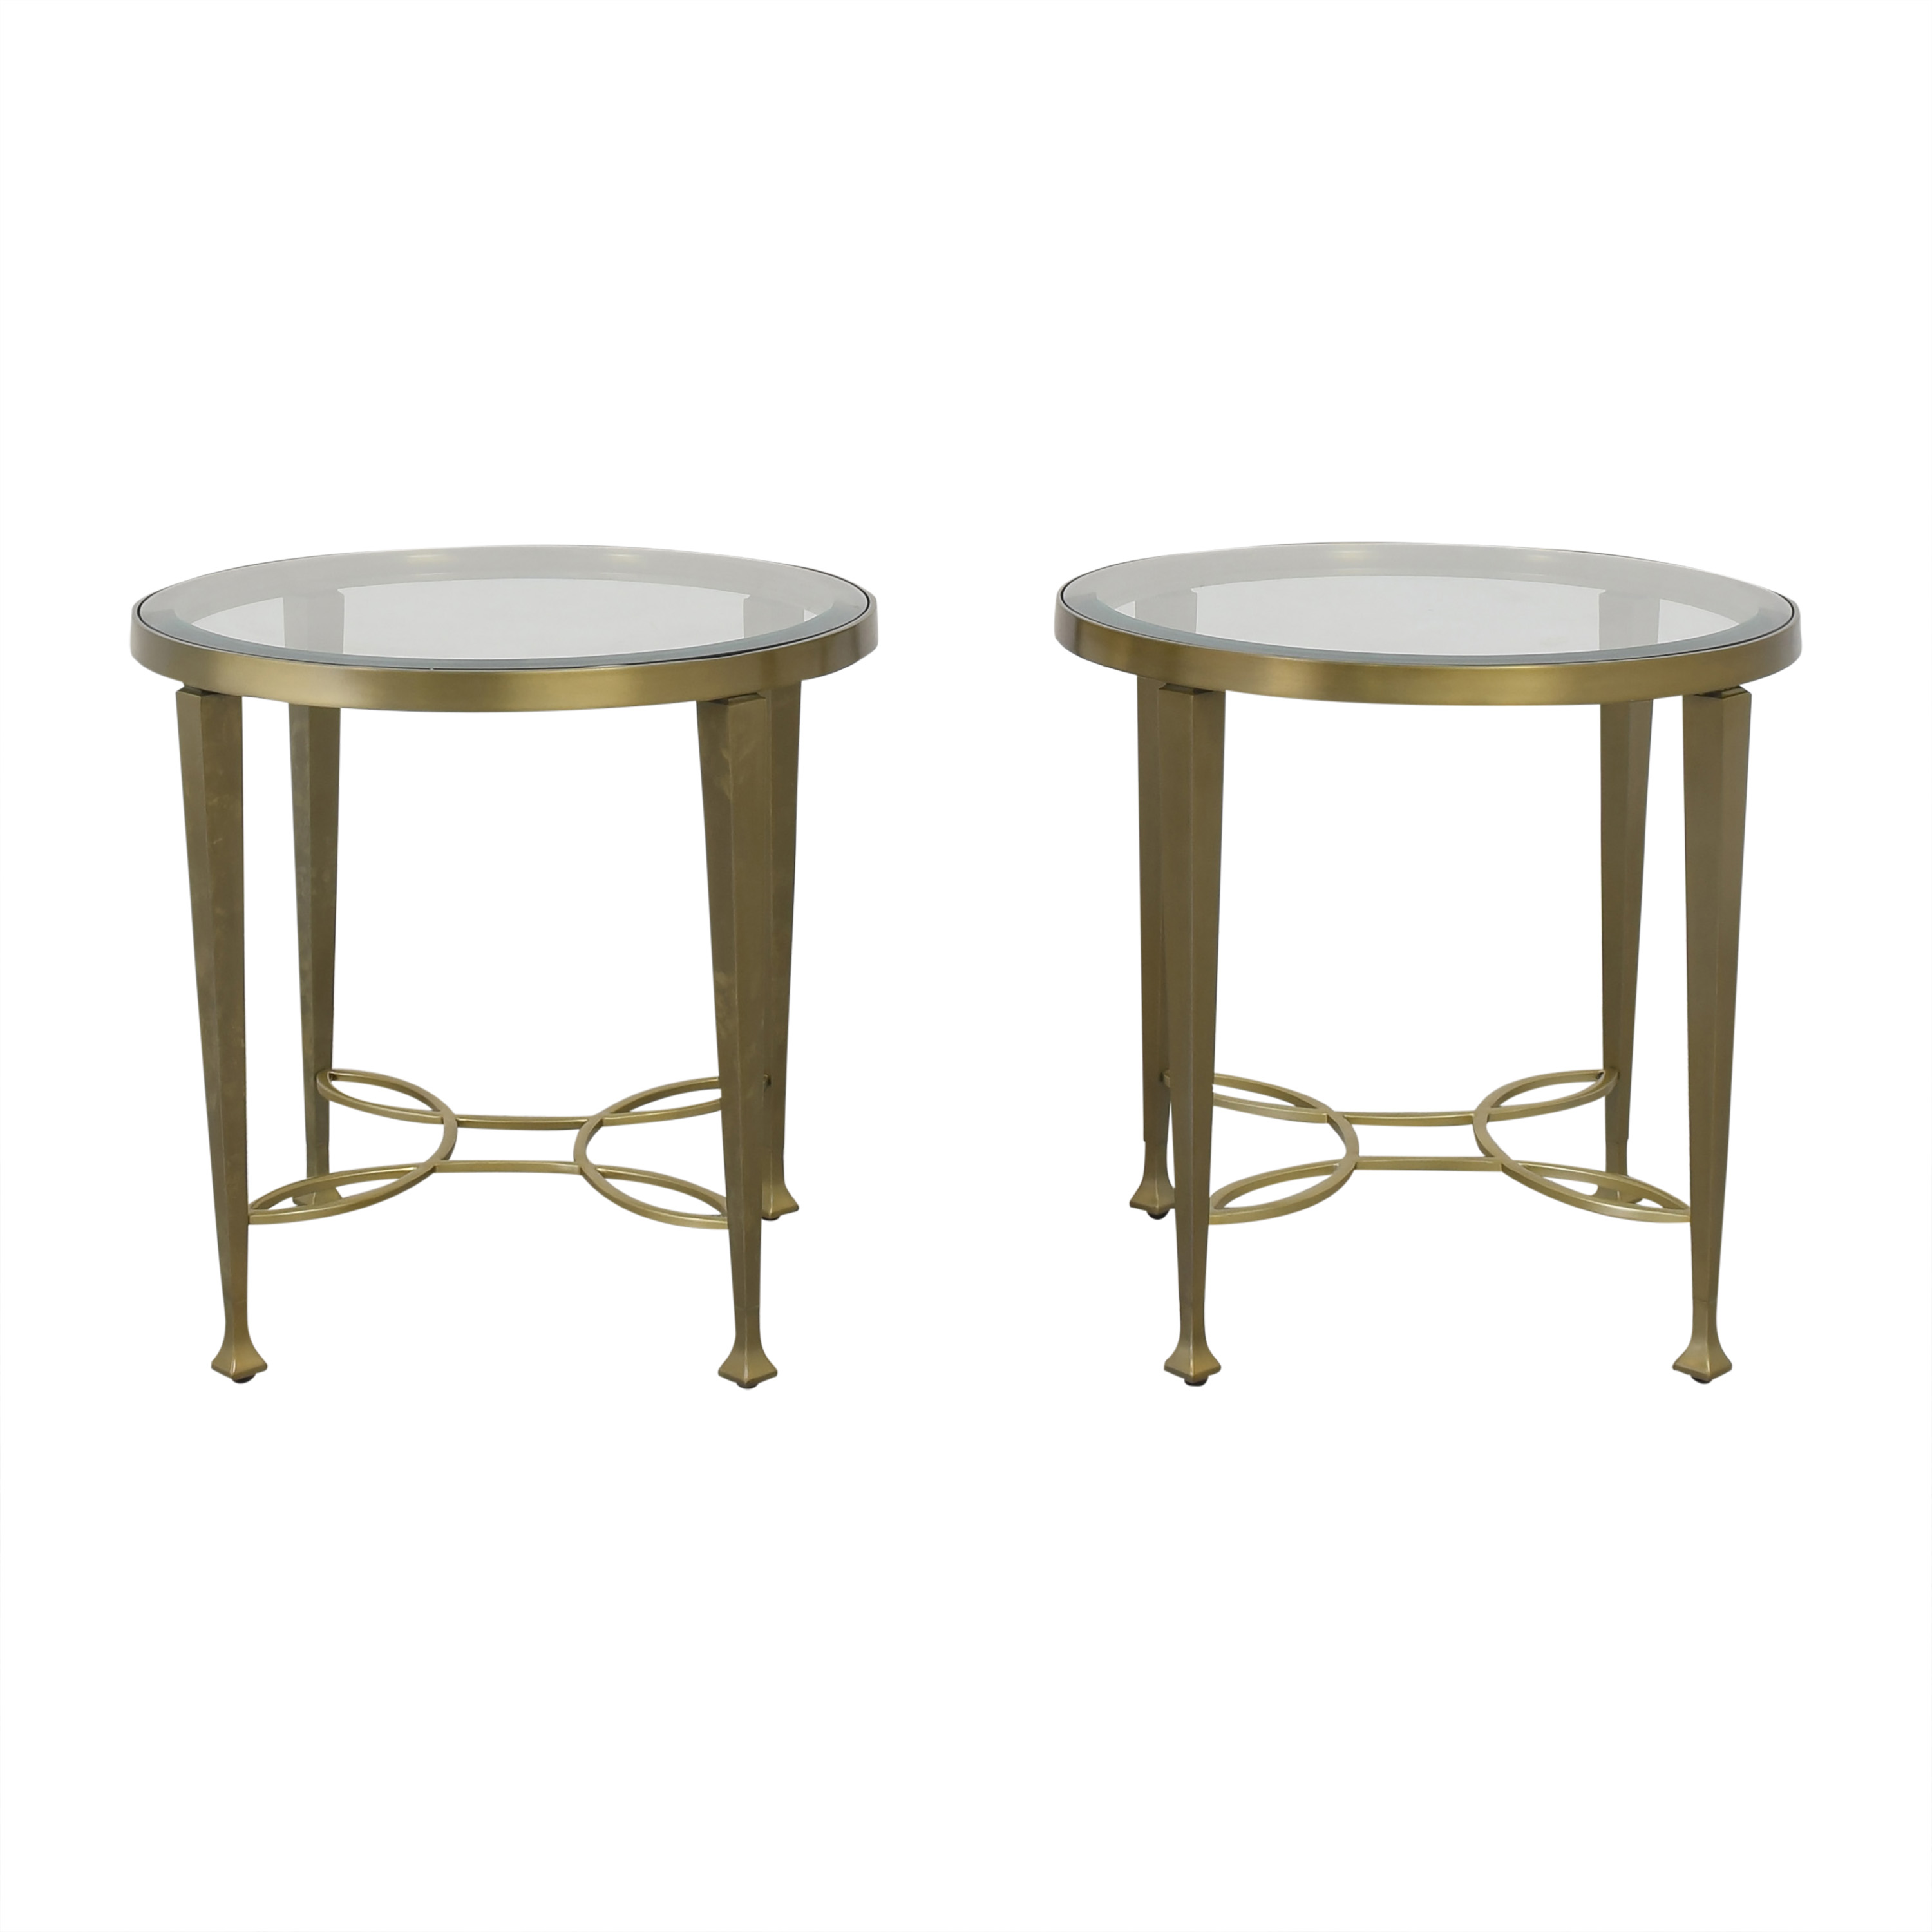 Thomasville Round End Tables / Tables